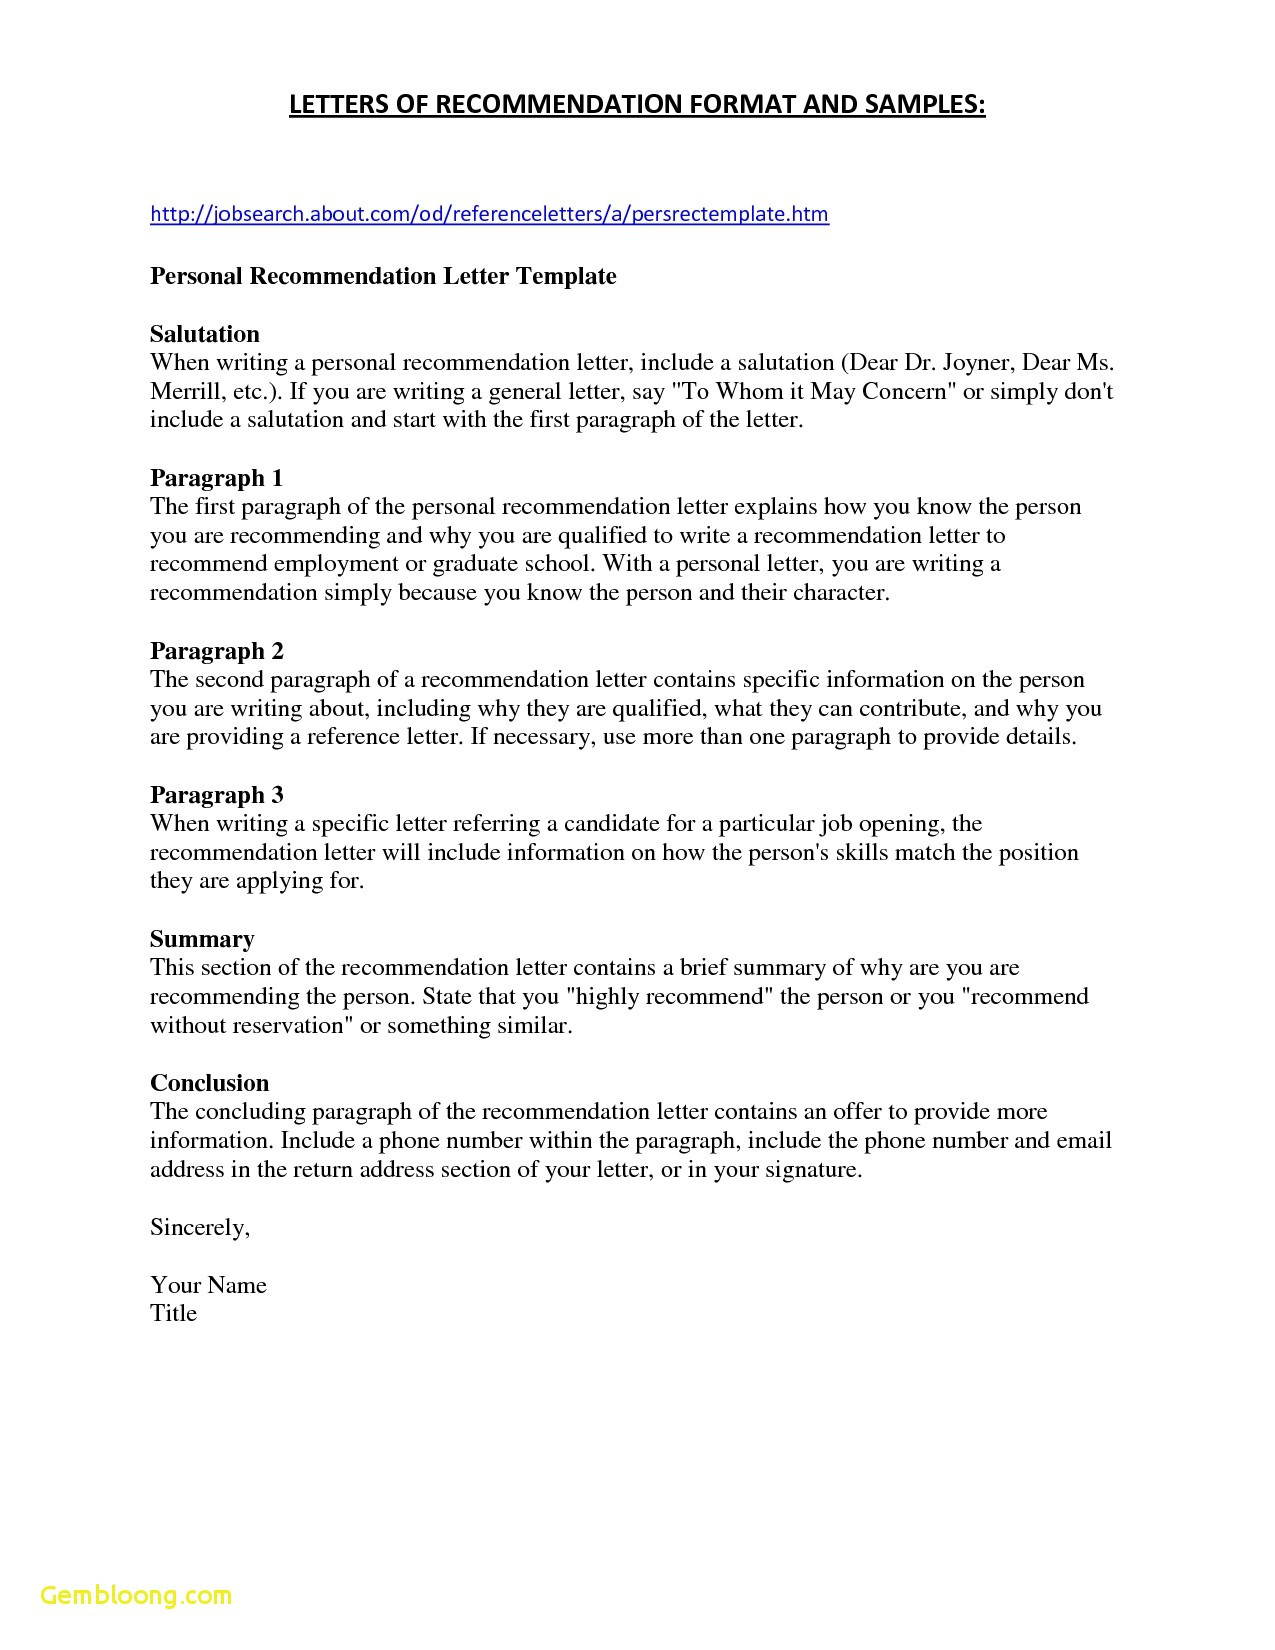 sample letter of recommendation template example-Letter Re mendation Template for College Admission New College Admission Resume Sample Download Sample Reference Letter 10-s